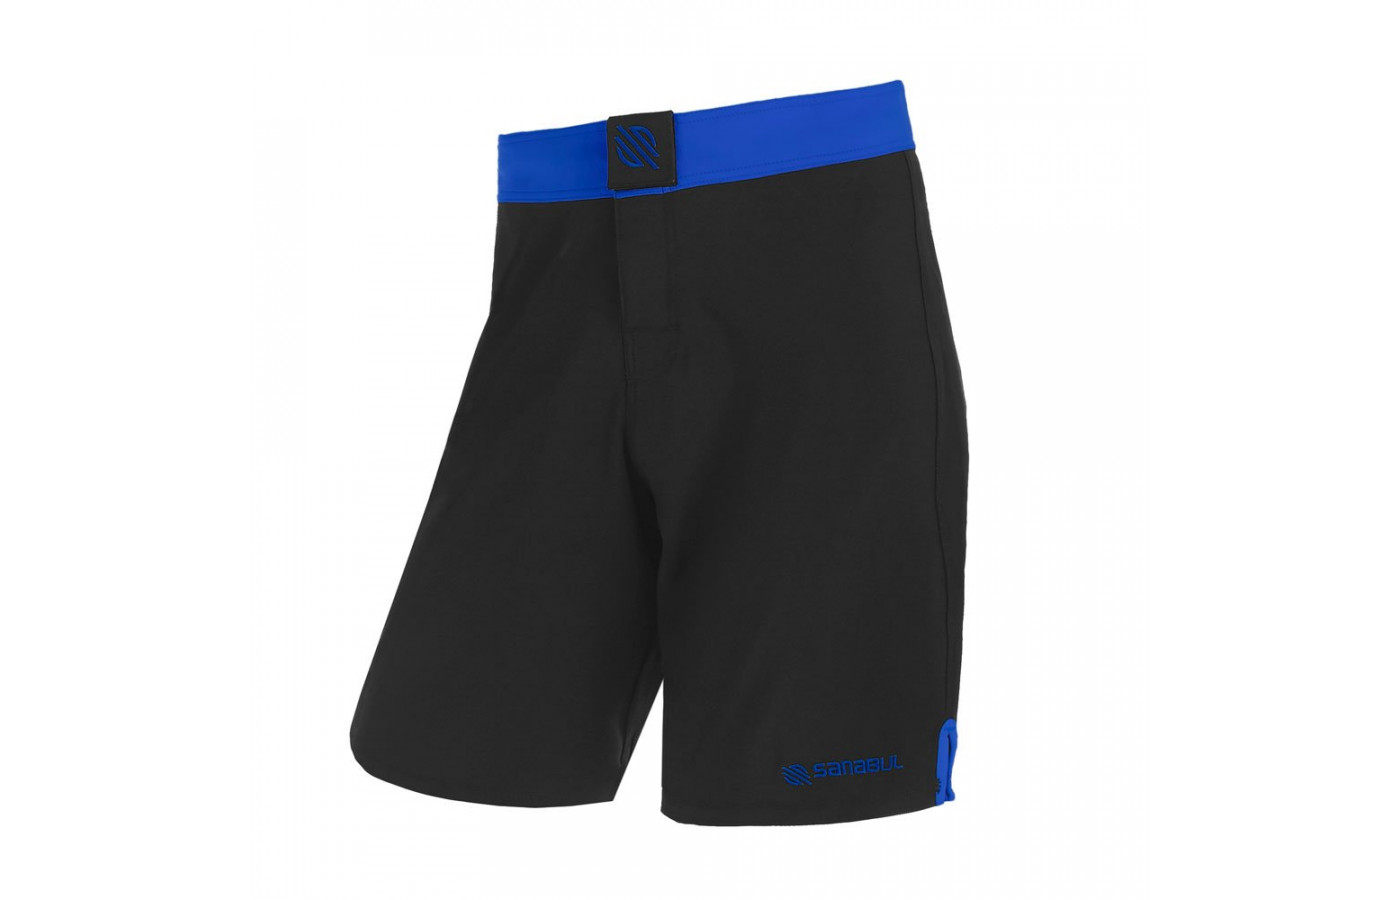 sanabul trunks blue